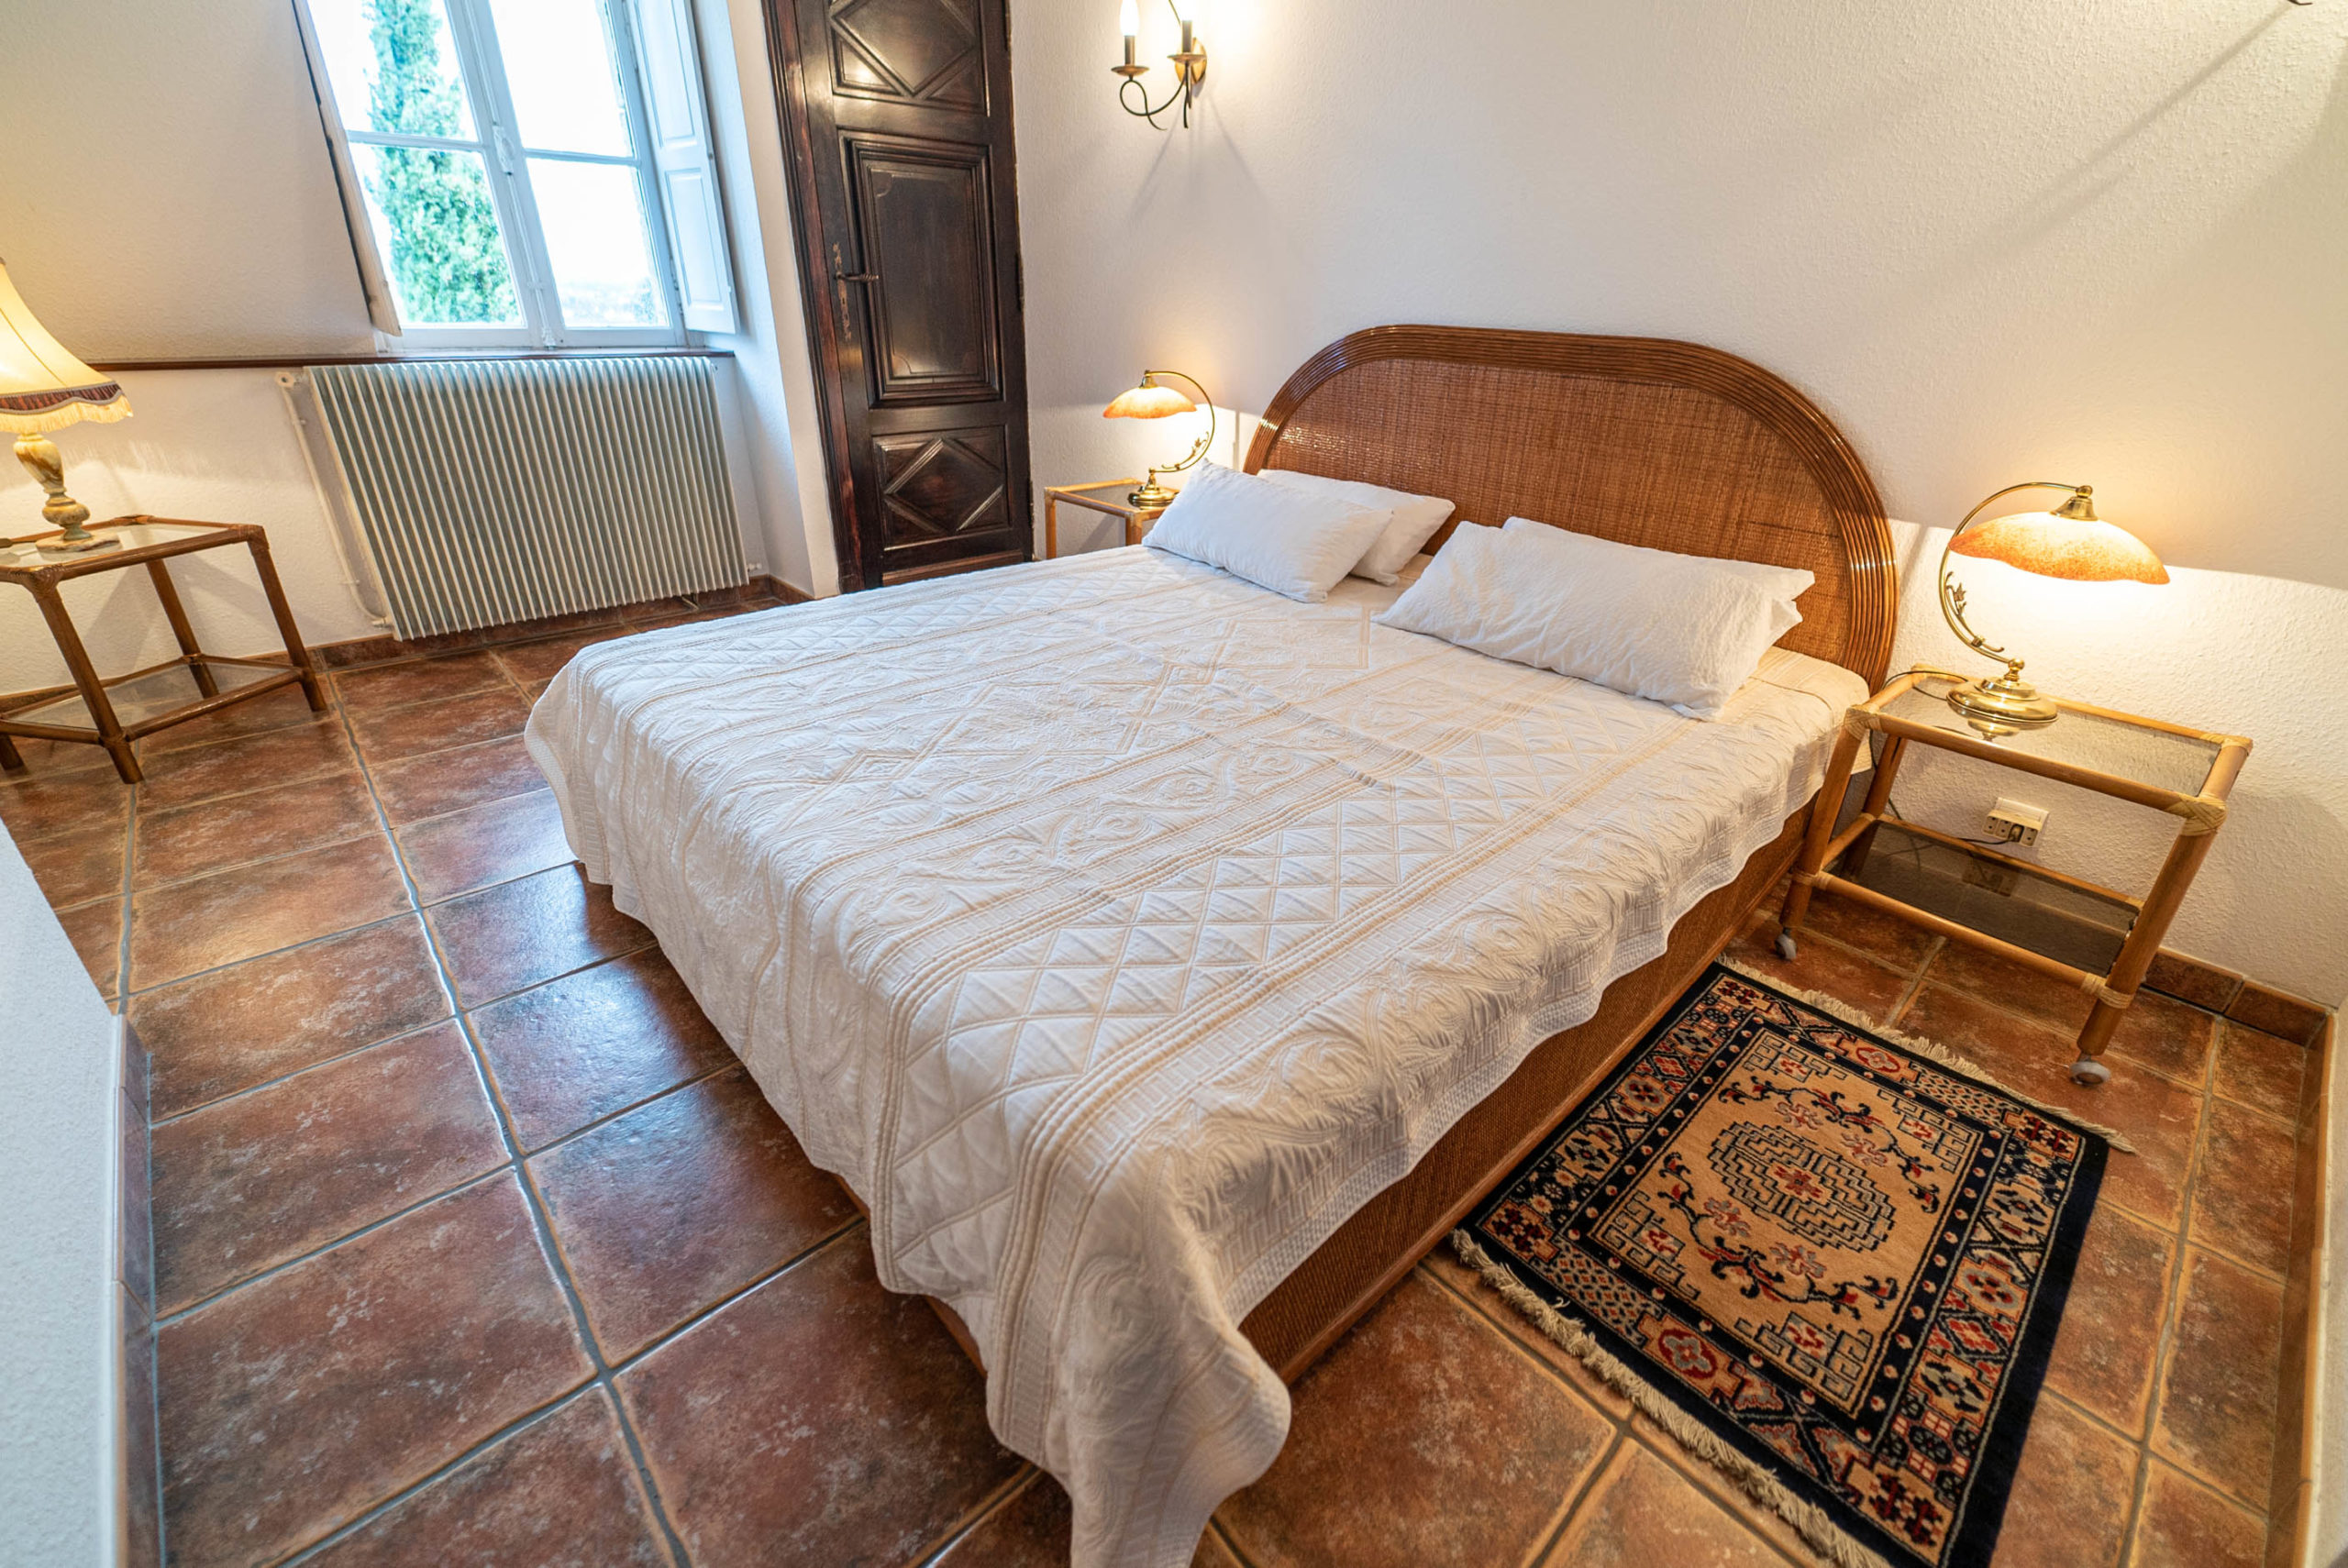 Chambre suite nuptiale chateau Rauly location bergerac Monbazillac